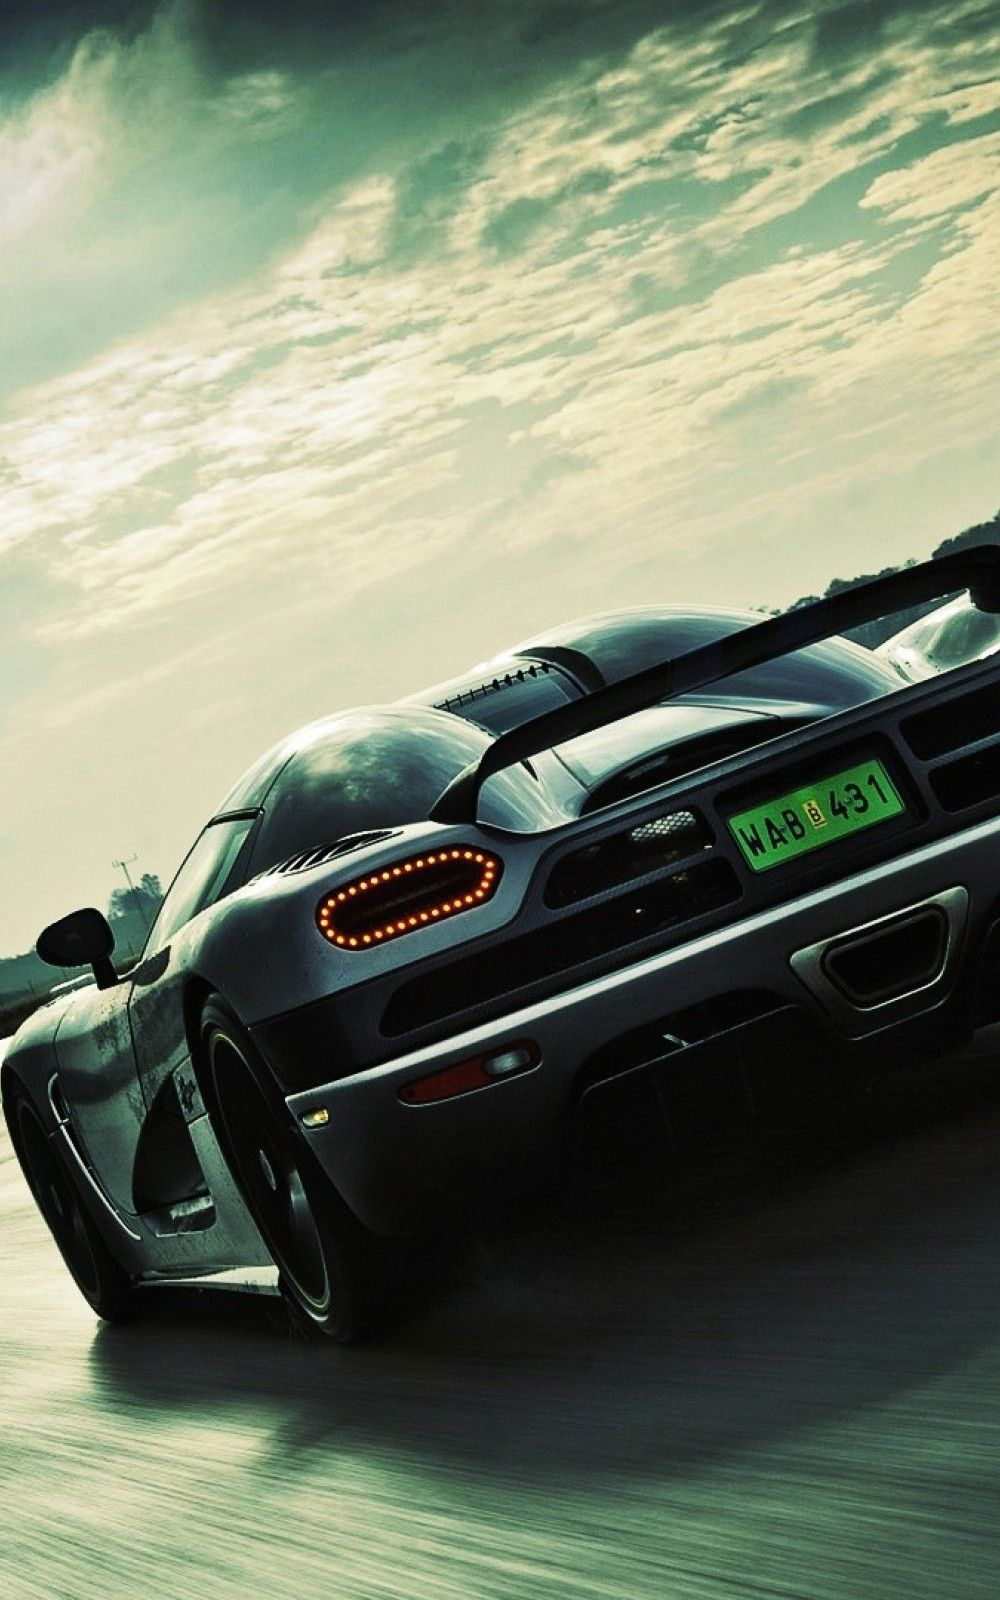 Pin By Zenzone On Phone Wallpapers Koenigsegg Sports Car